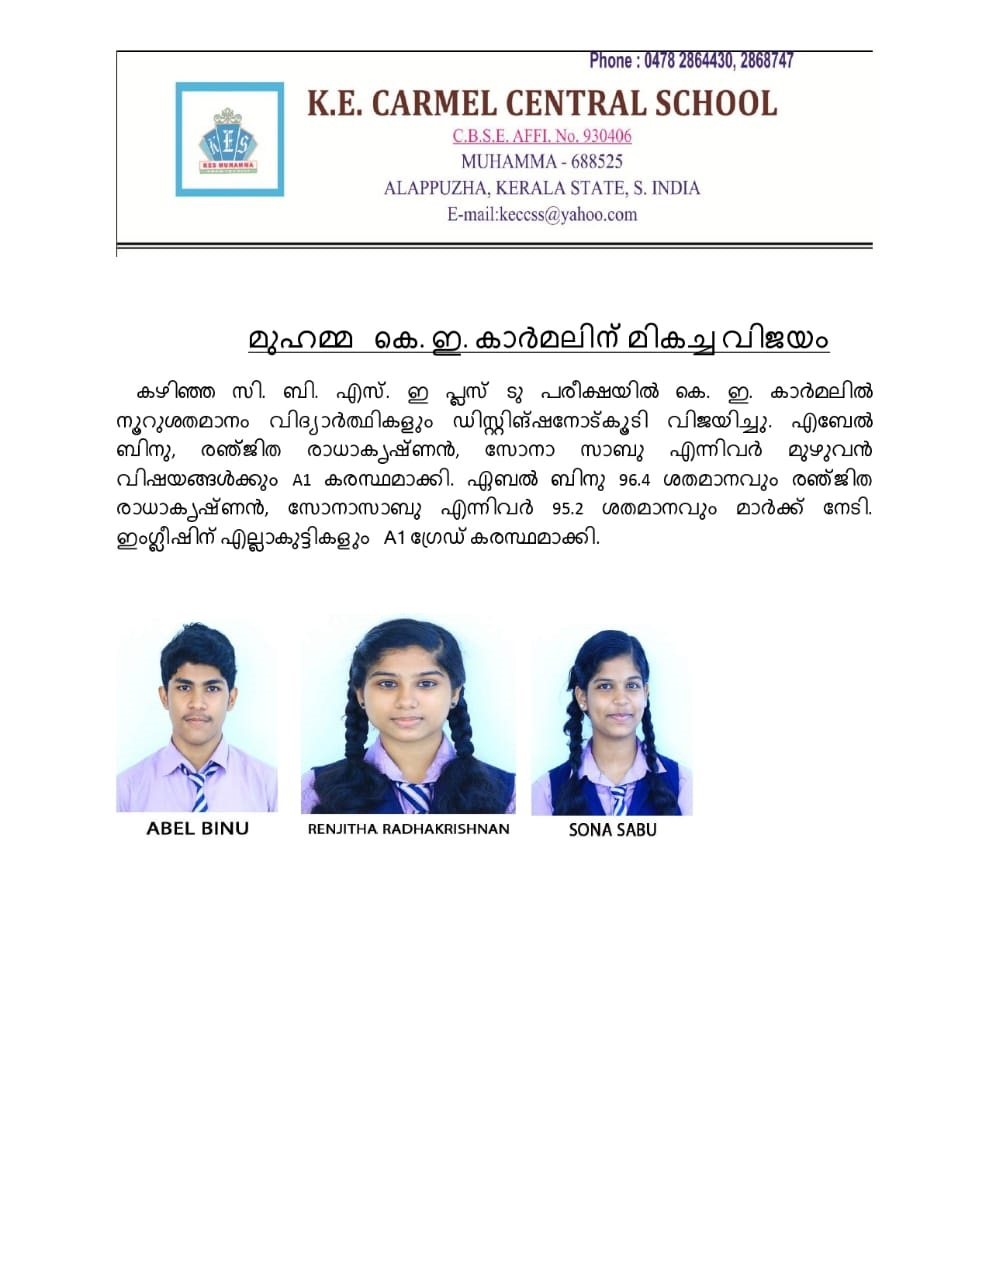 PLUS 2 CBSE TOPPERS 2019-2020